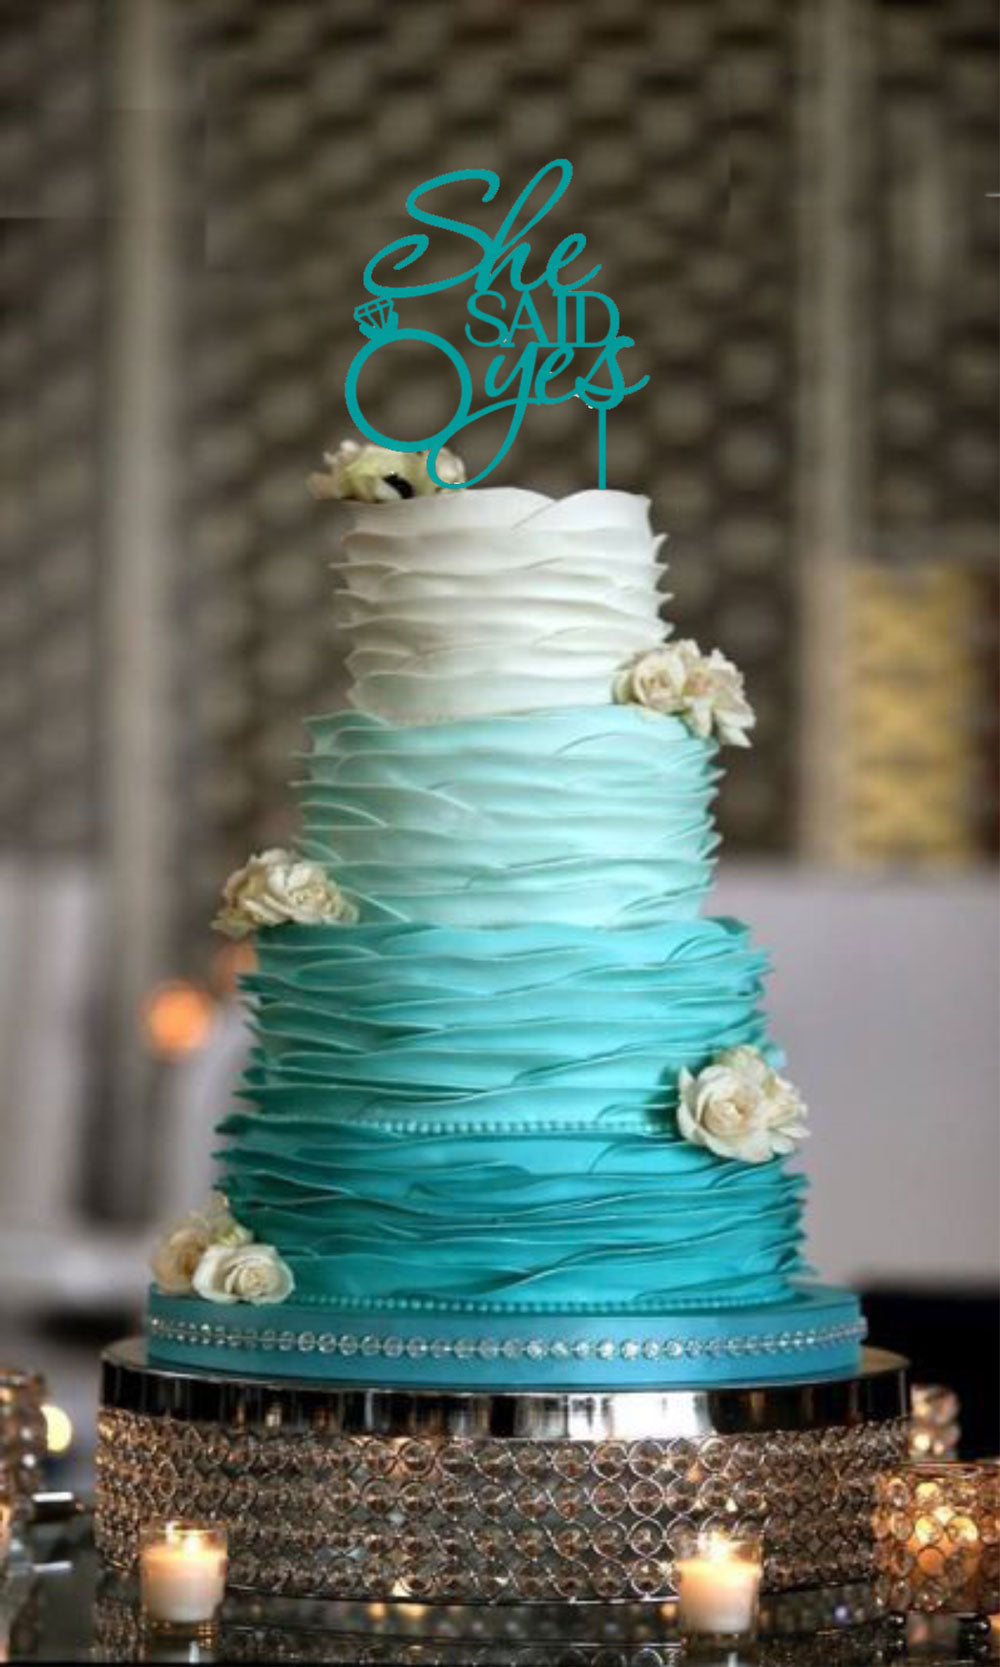 She Said Yes Cake Topper Wedding Decorations Glossy Teal